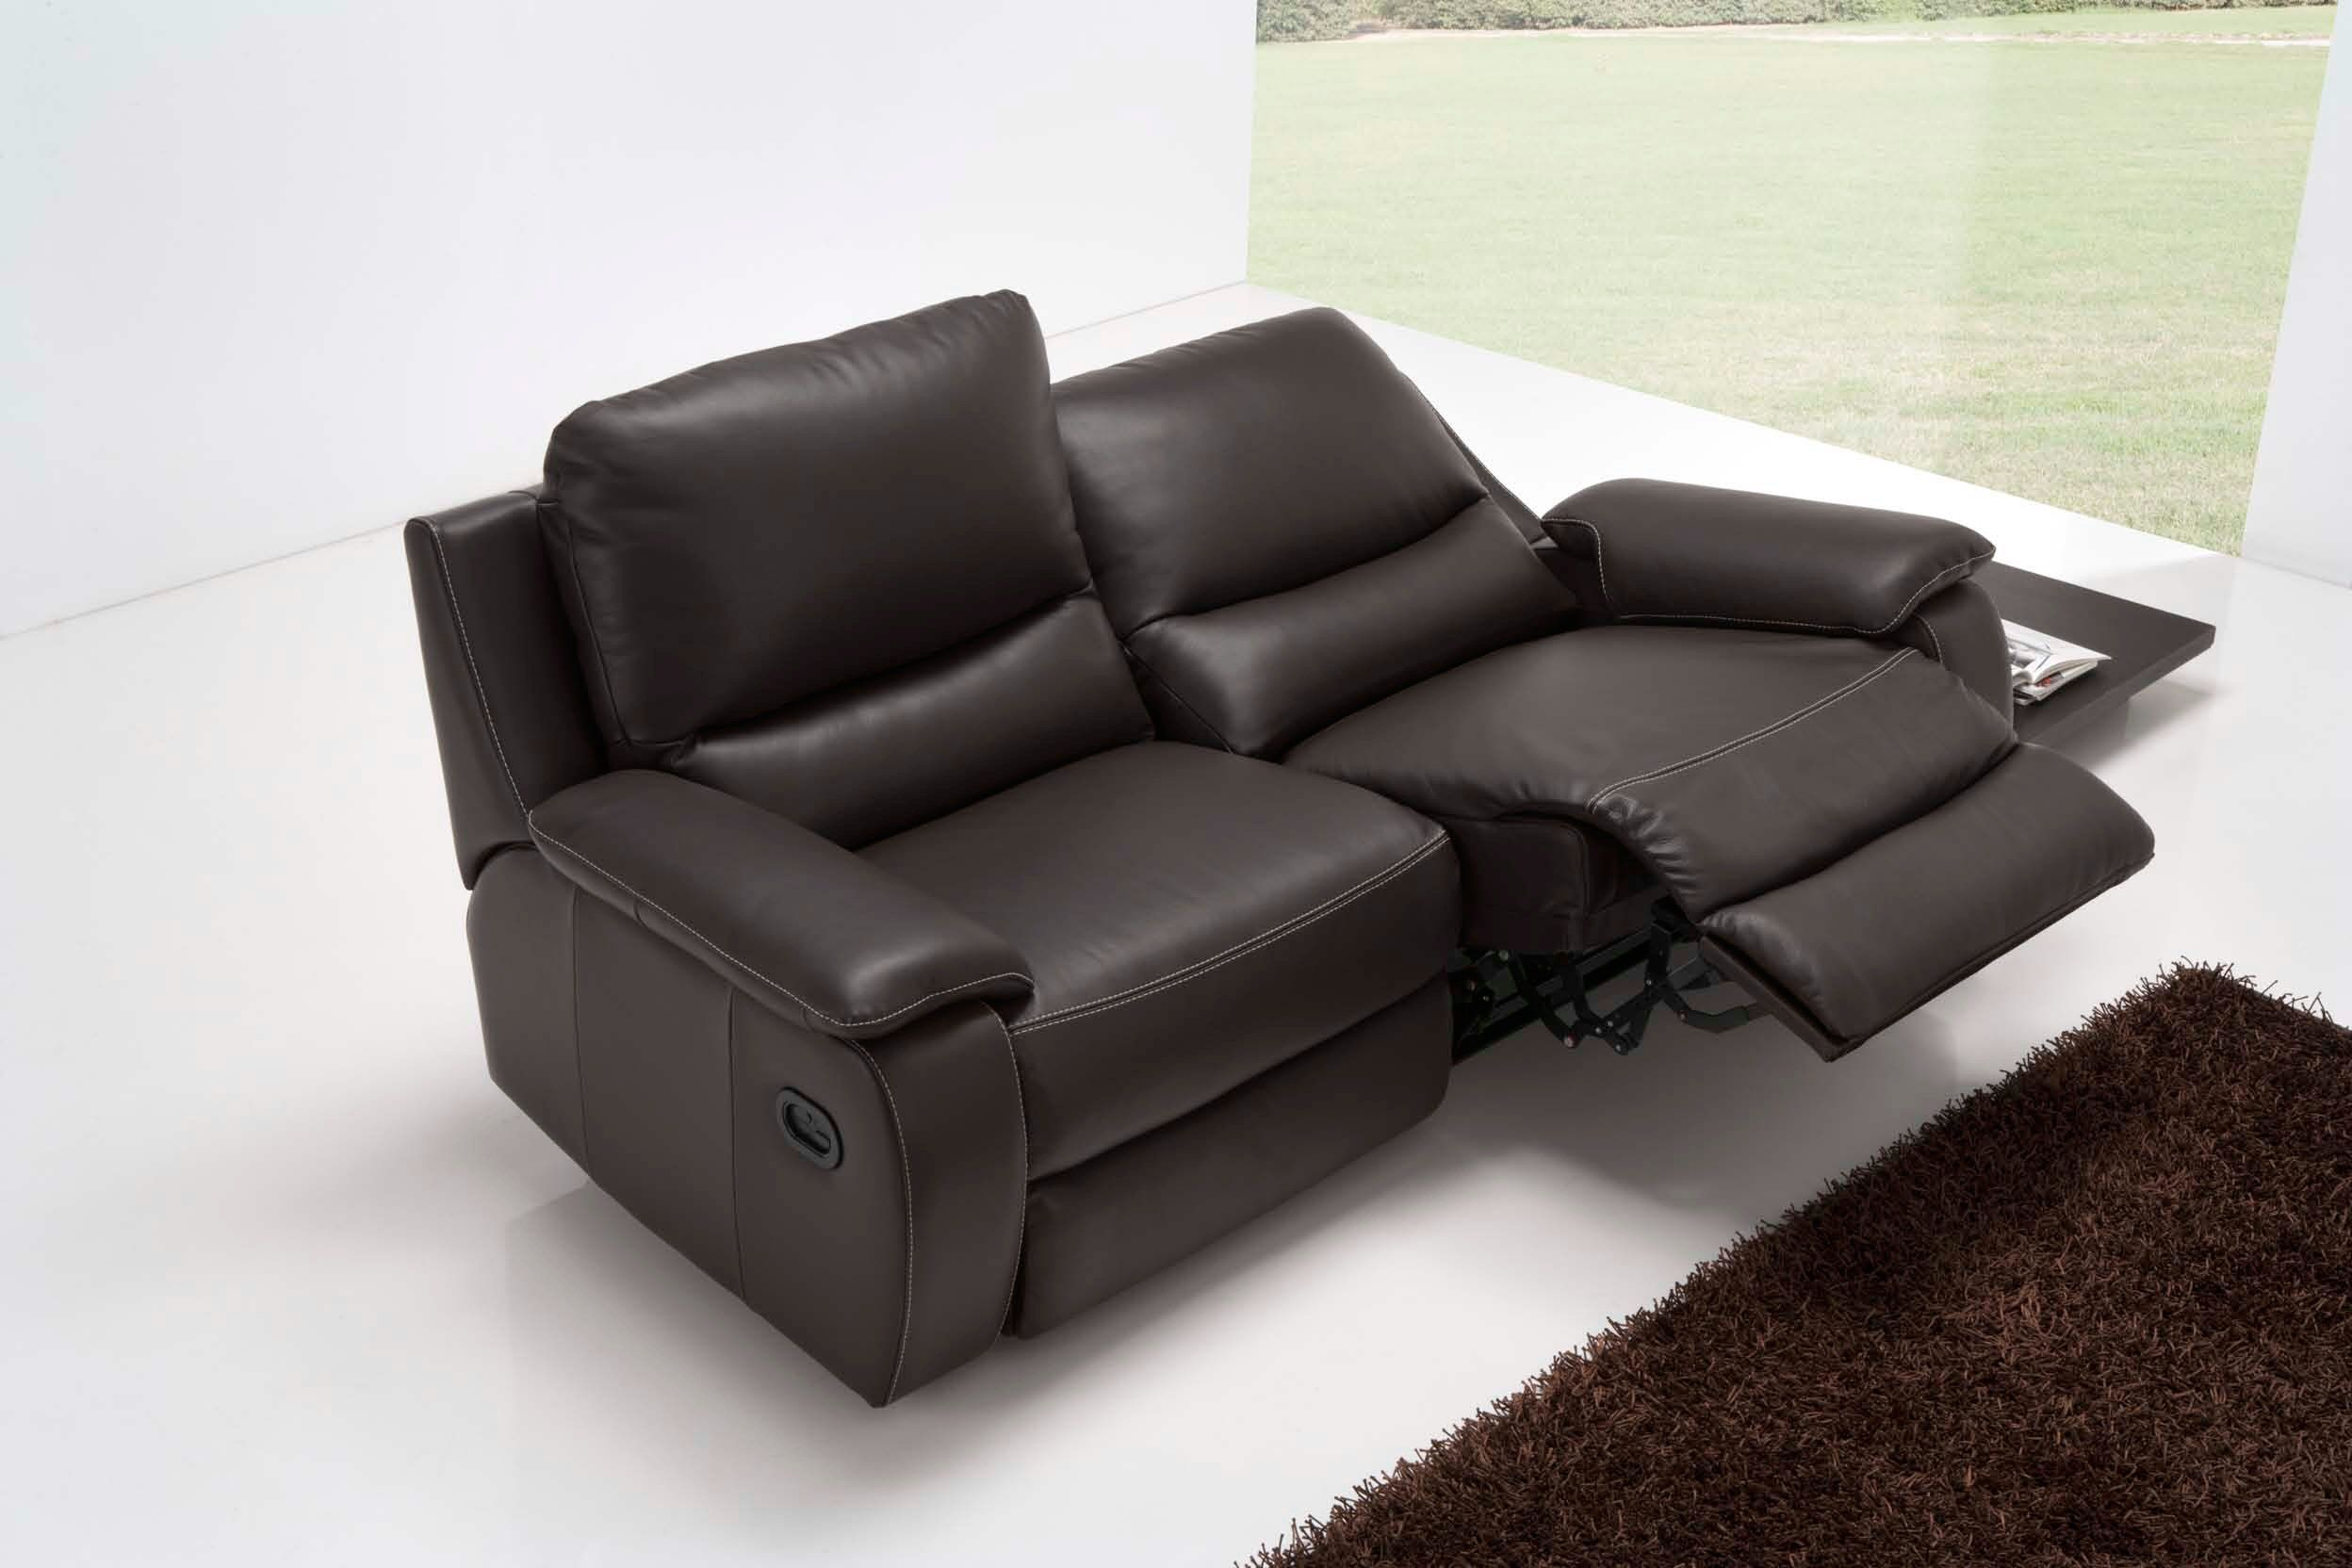 Awesome Epic 2 Seater Recliner Sofa Leather 36 For Your Fabric Sofa Ideas With 2  Seater Recliner Sofa Leather Lovely 2 Seater Recliner Sofa Leather